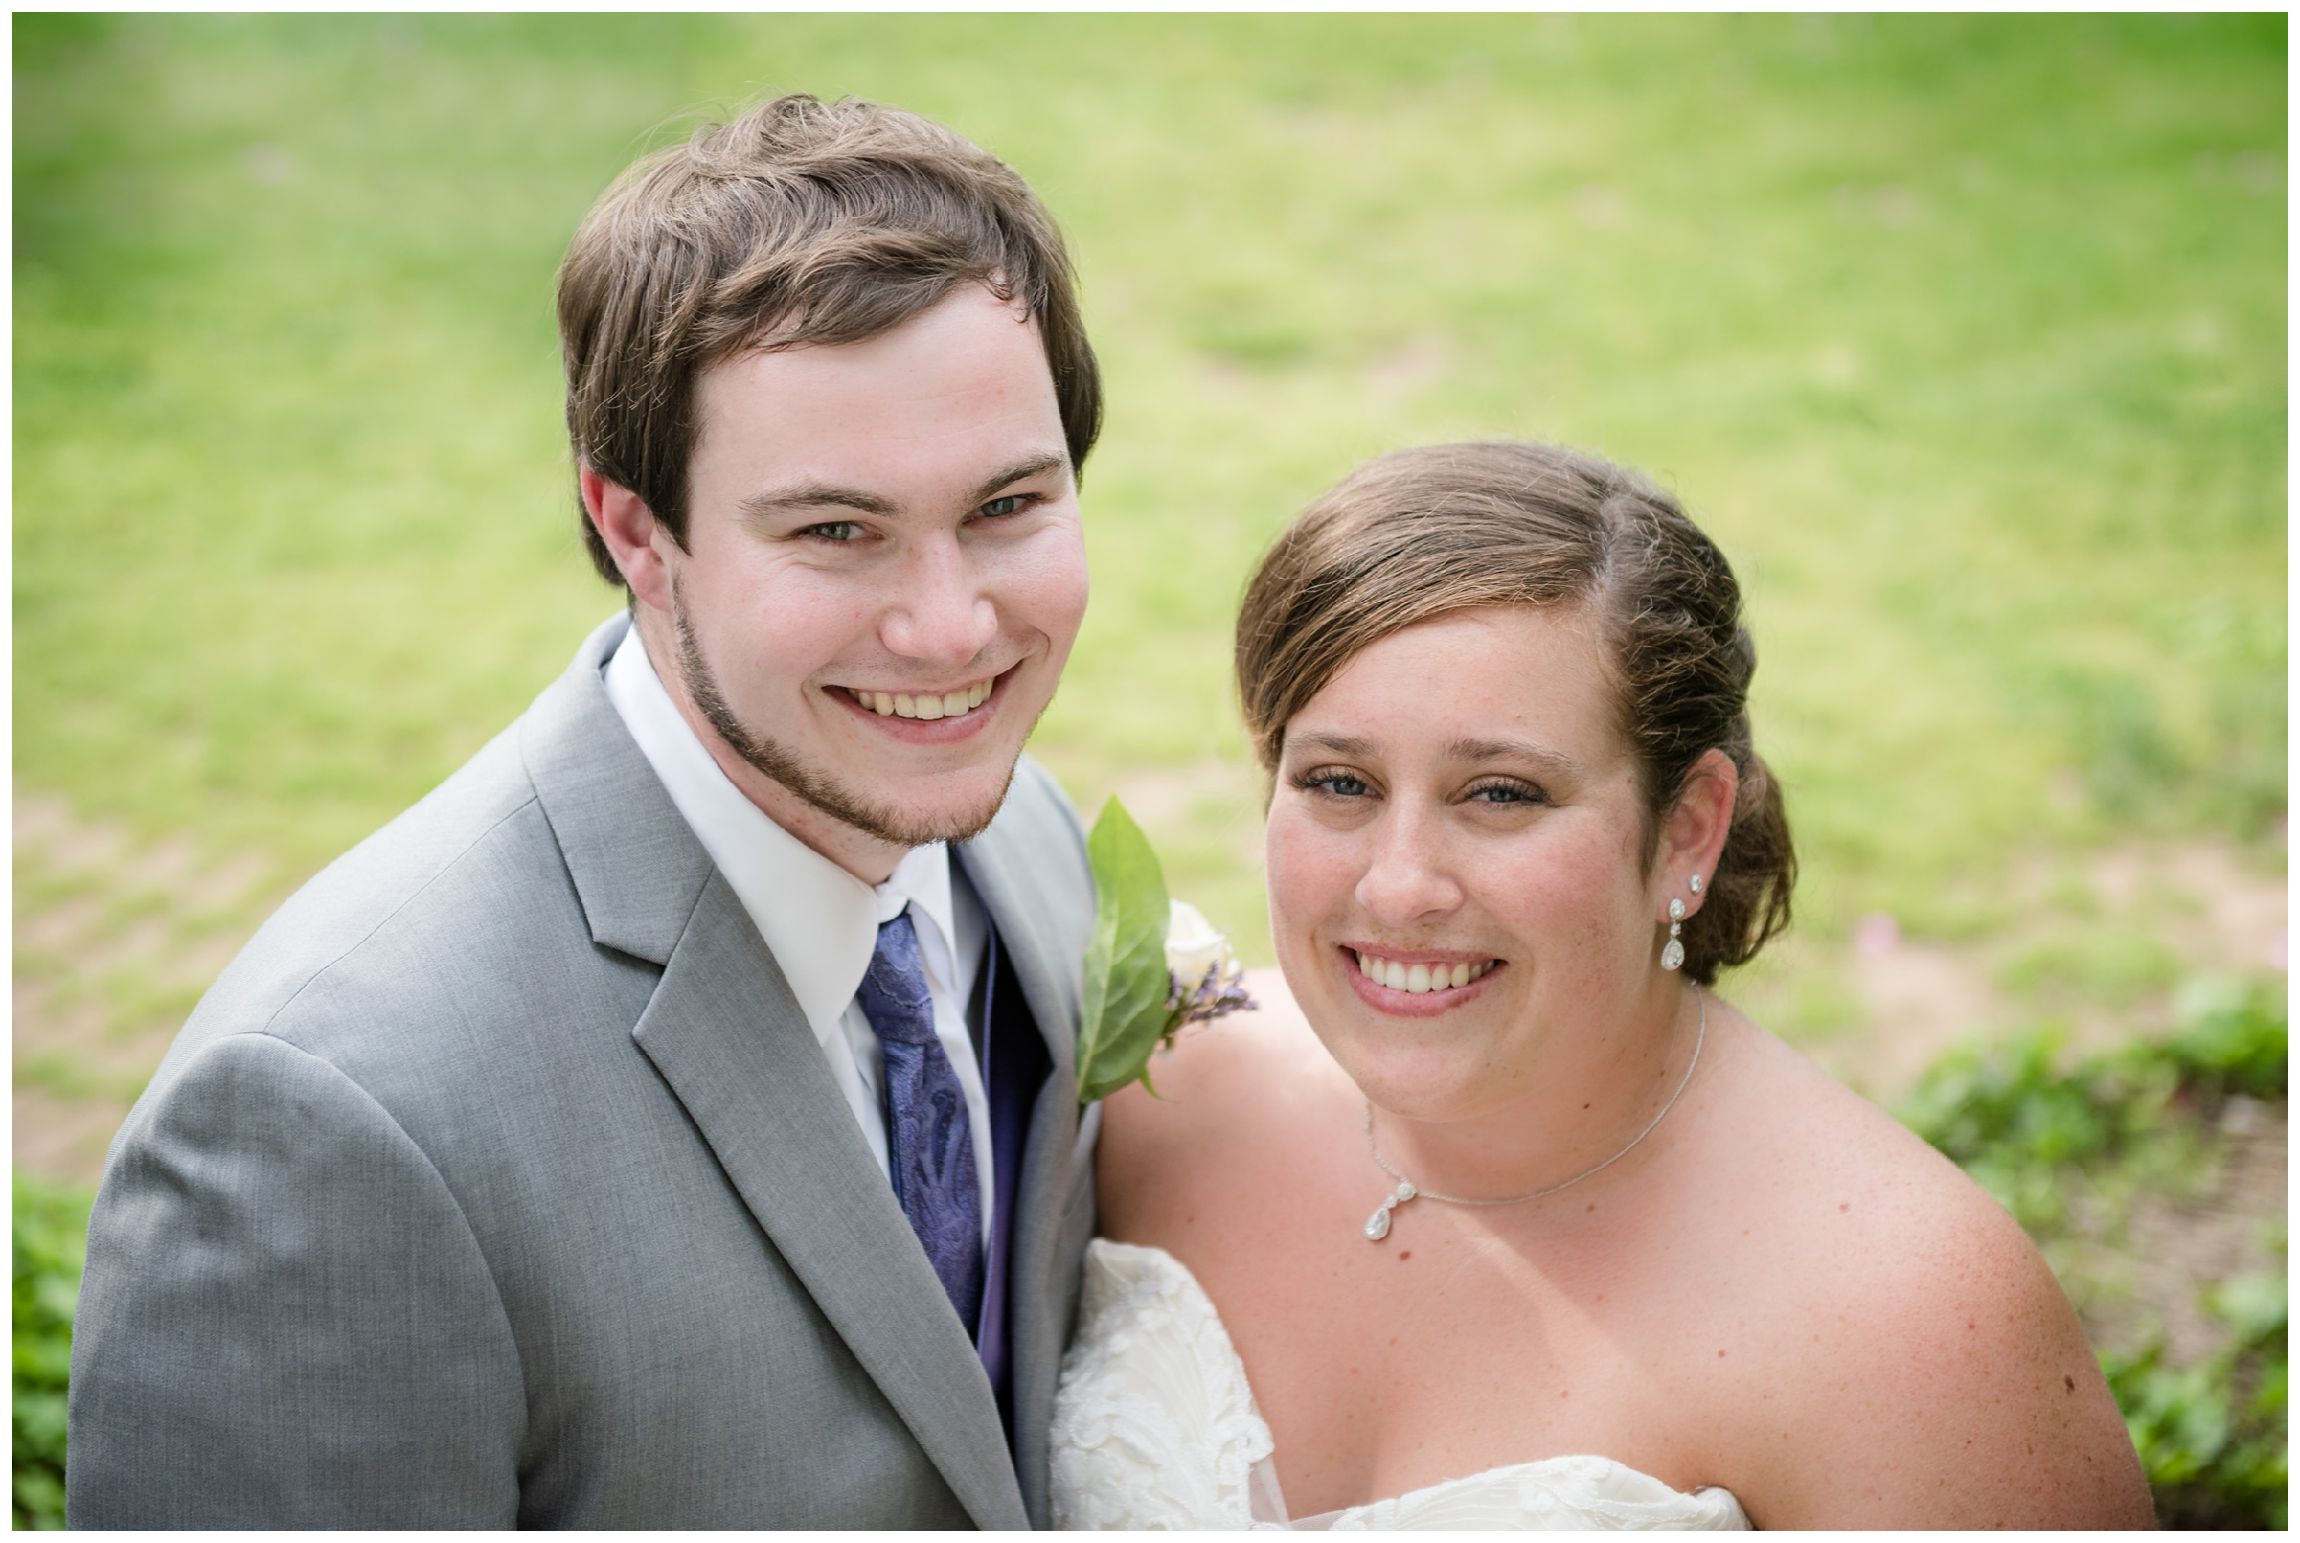 bride and groom portrait on wedding day at Wolftrap Farm